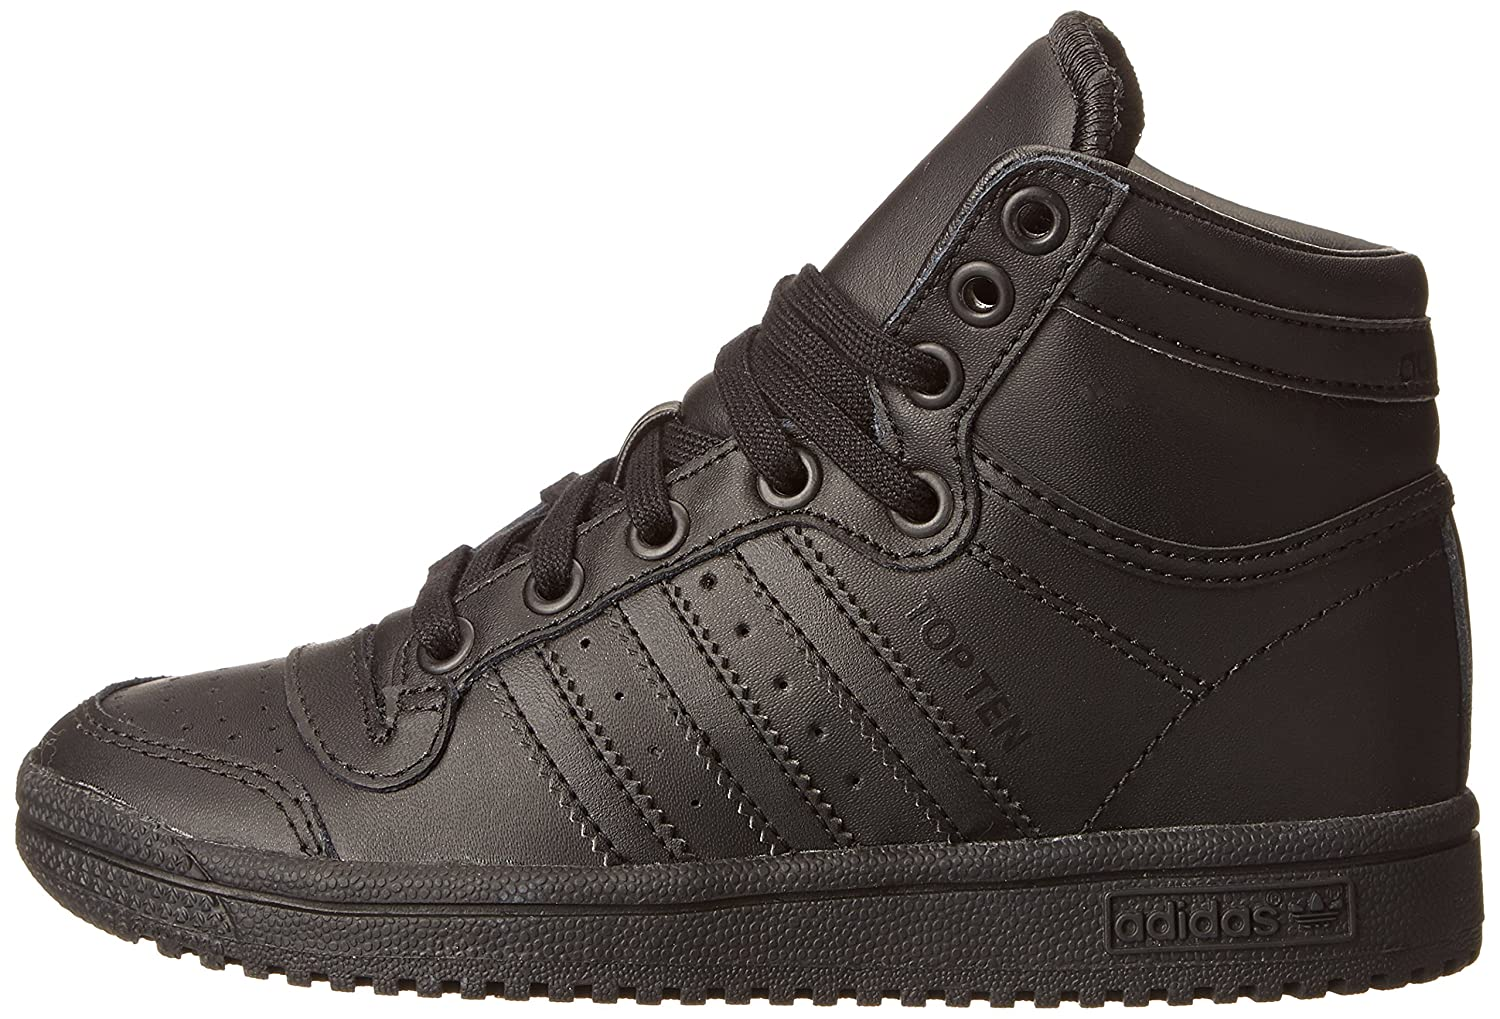 super popular 157a1 e4916 Amazon.com   adidas Originals Top Ten Hi C Basketball Sneaker (Little  Kid Big Kid)   Basketball